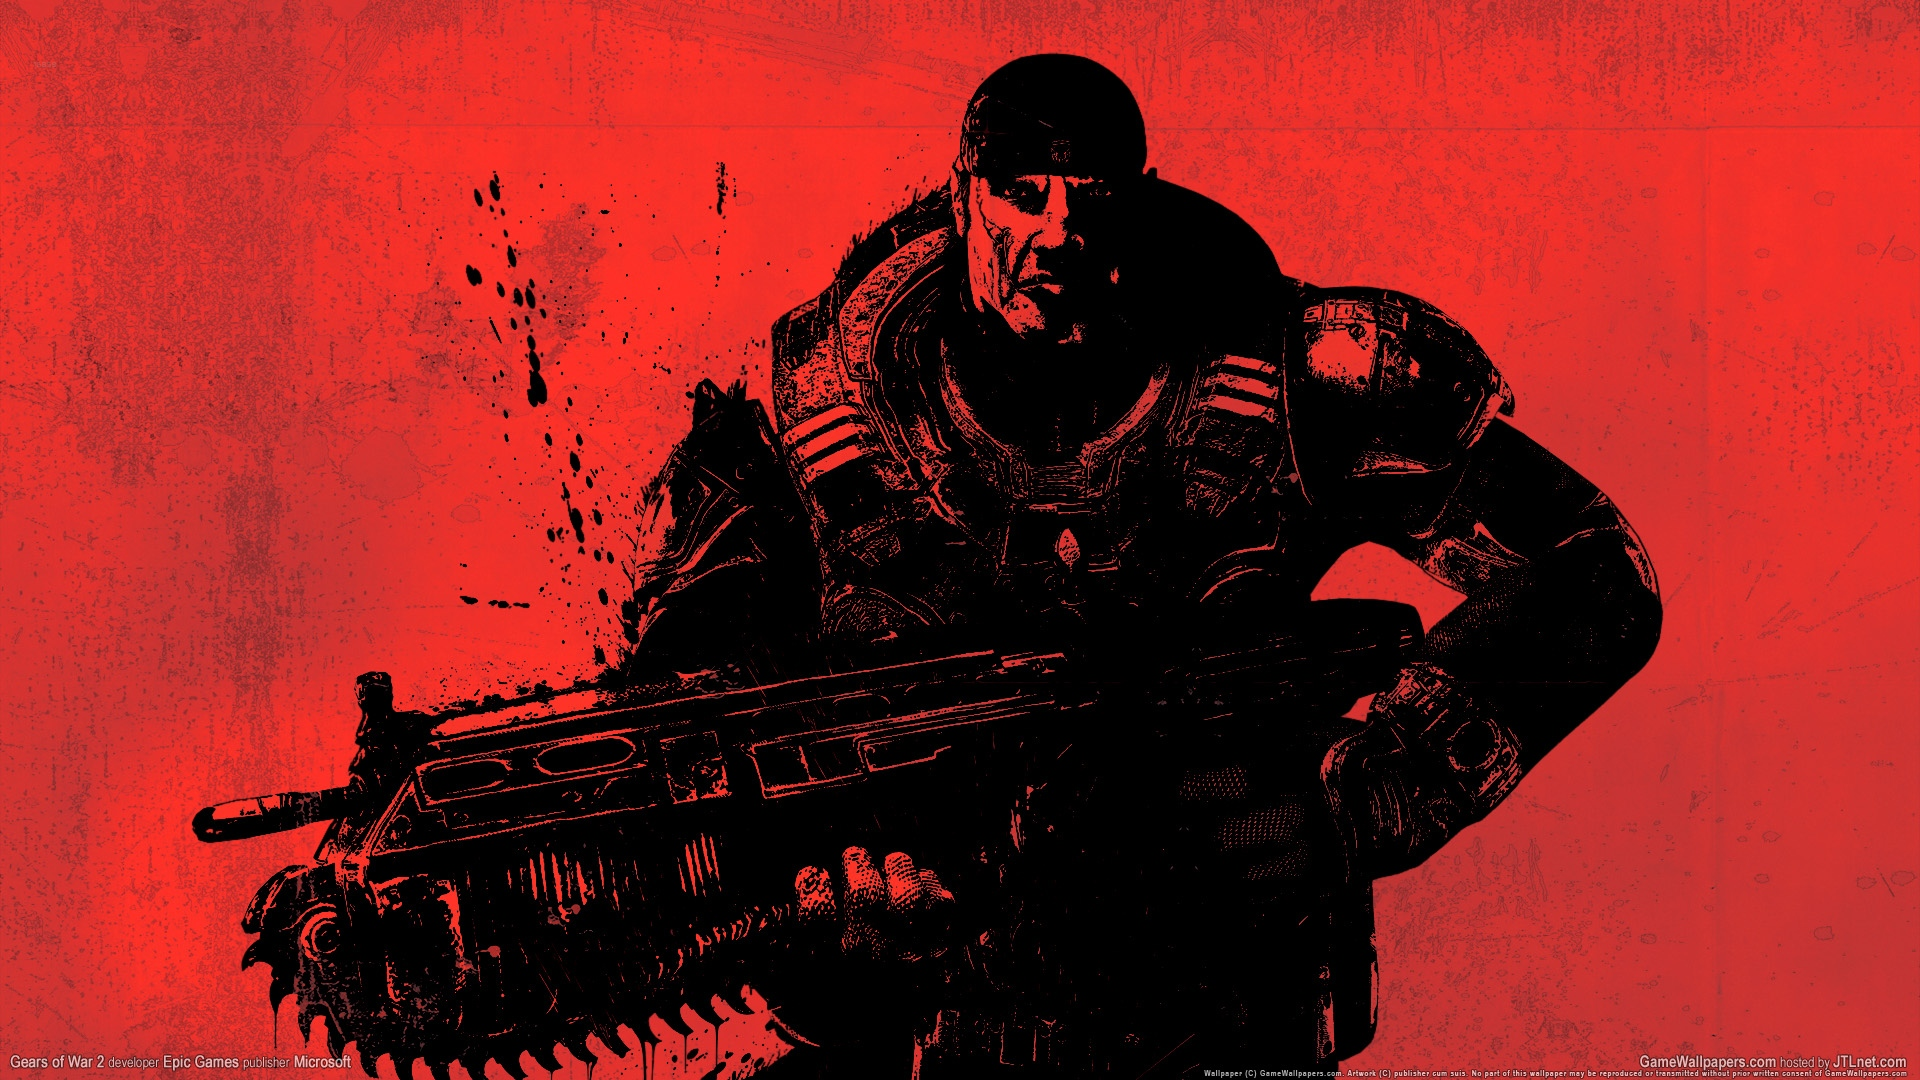 gears of war 2 full hd wallpaper and background image | 1920x1080